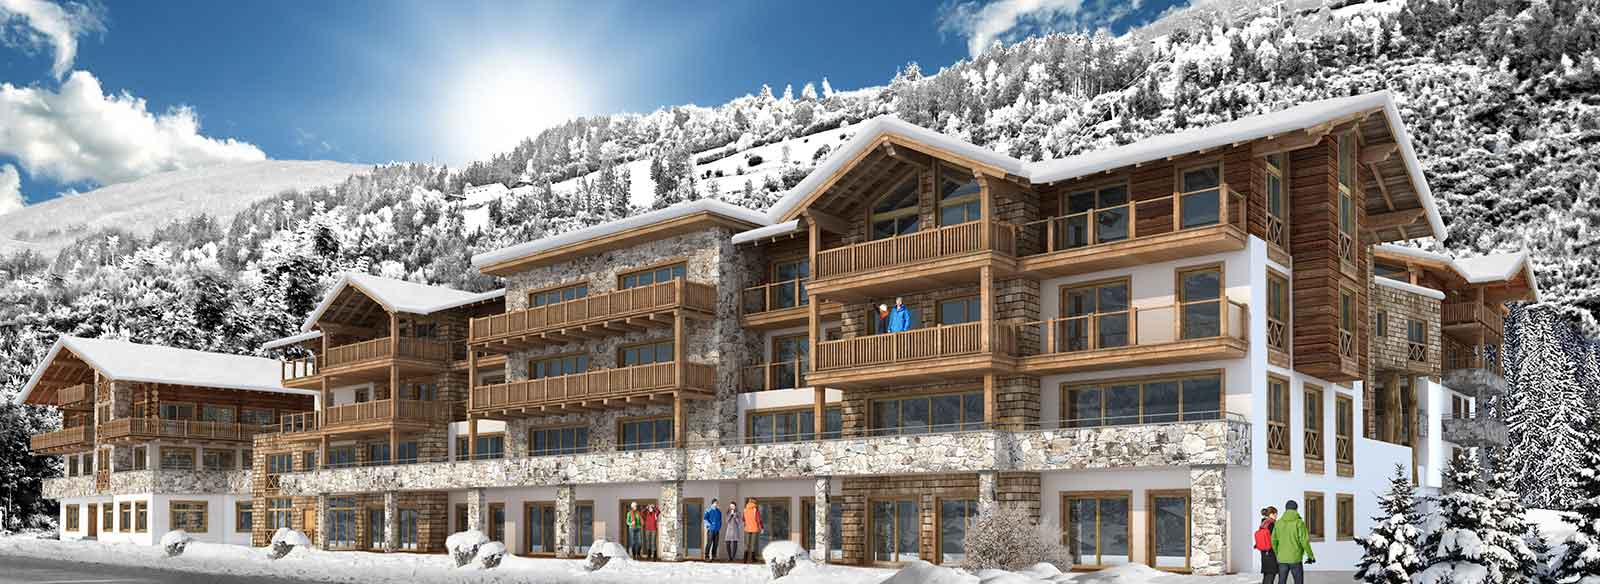 Snowpeak Mountain Suites